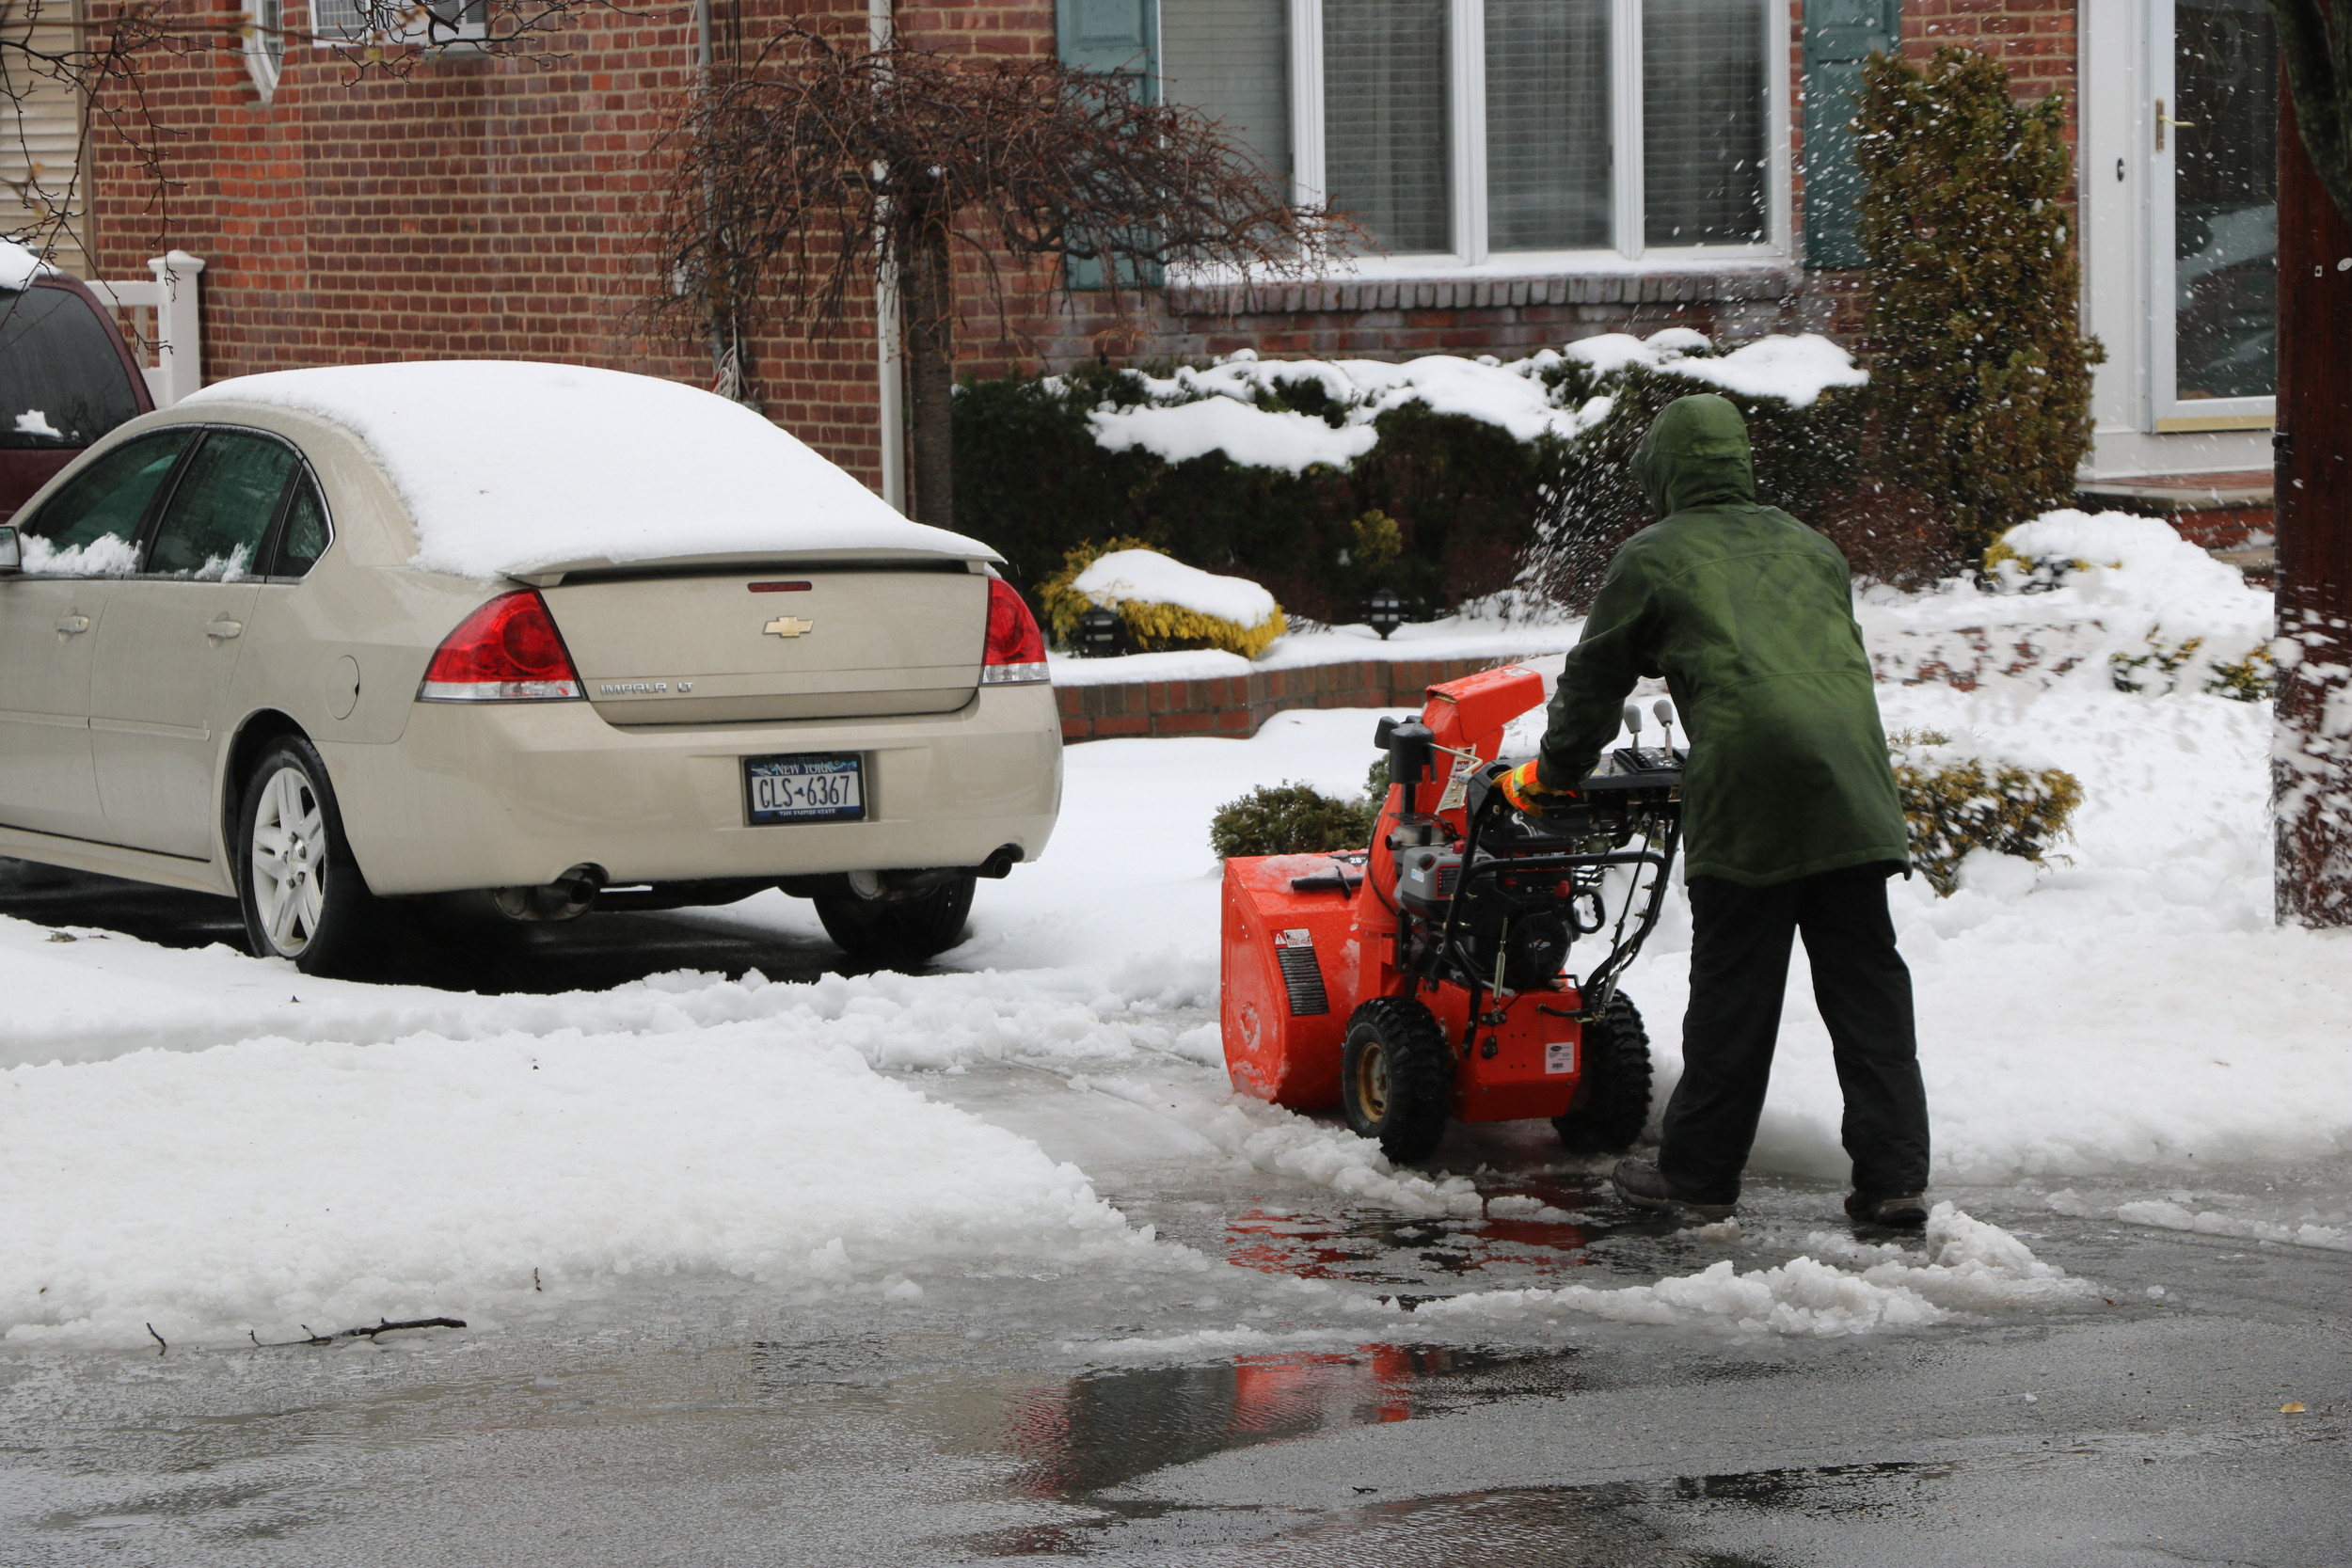 A Malverne resident blew away wet, heavy snow while standing in puddles of freezing rain.